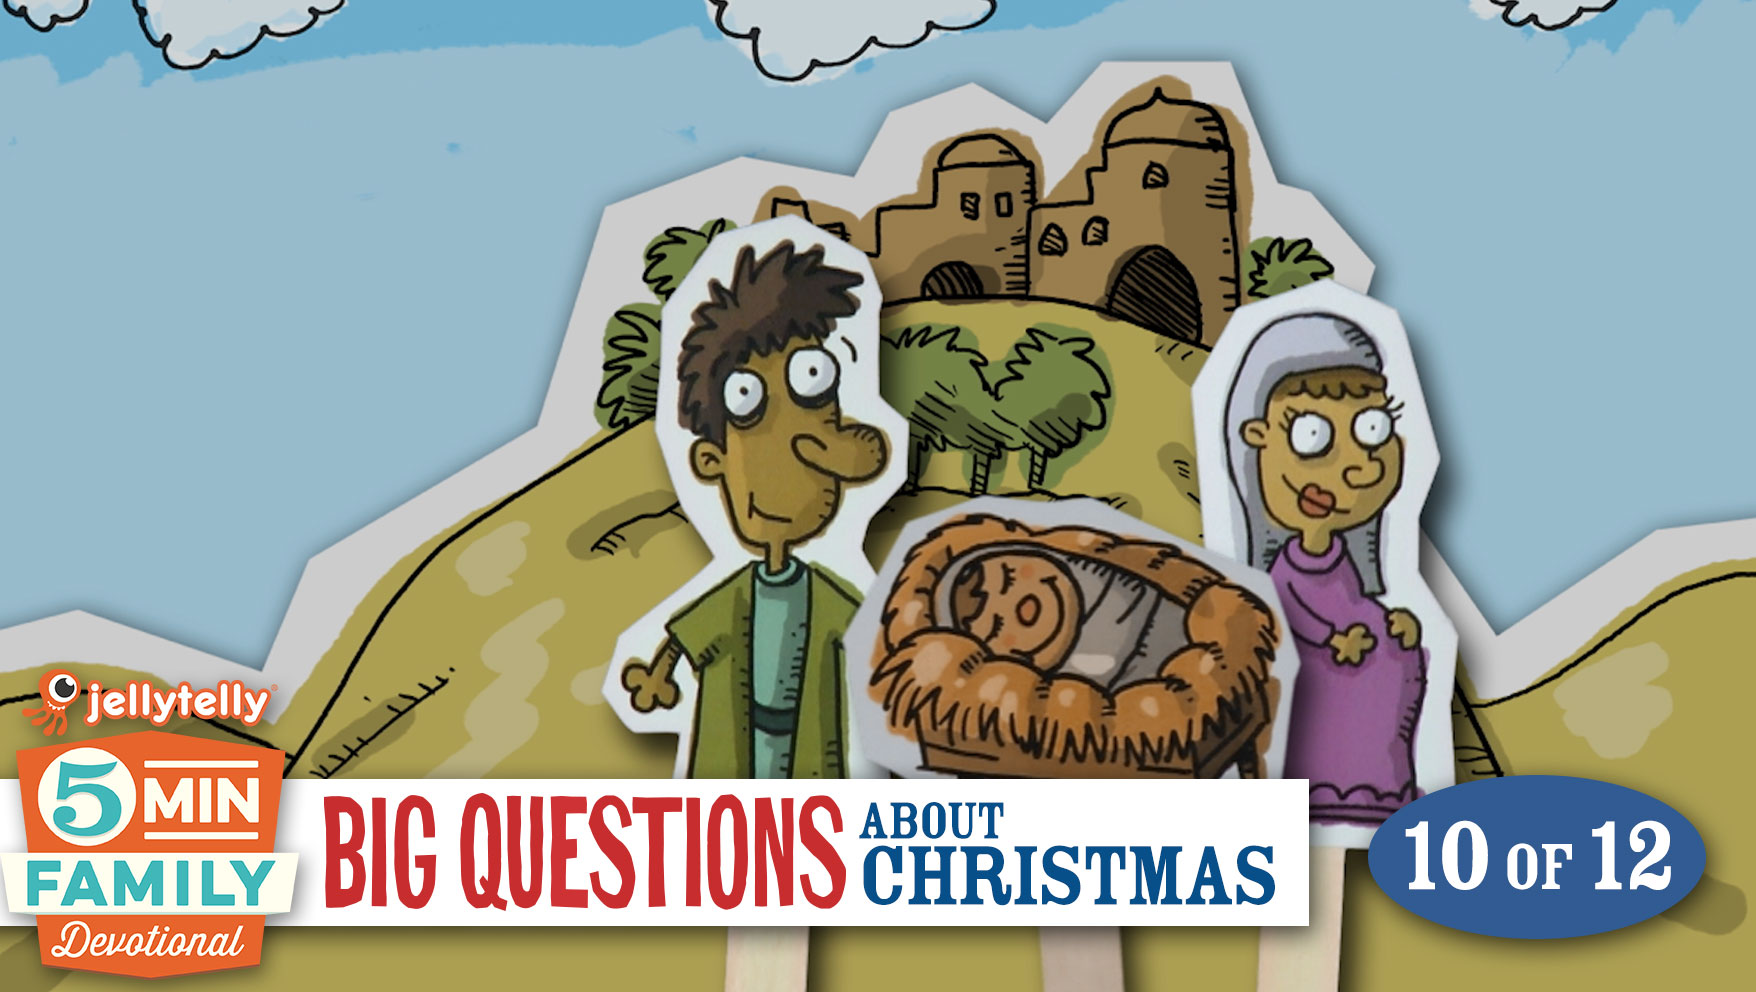 Where Was Jesus Born? - Christmas 5 Minute Family Devotional